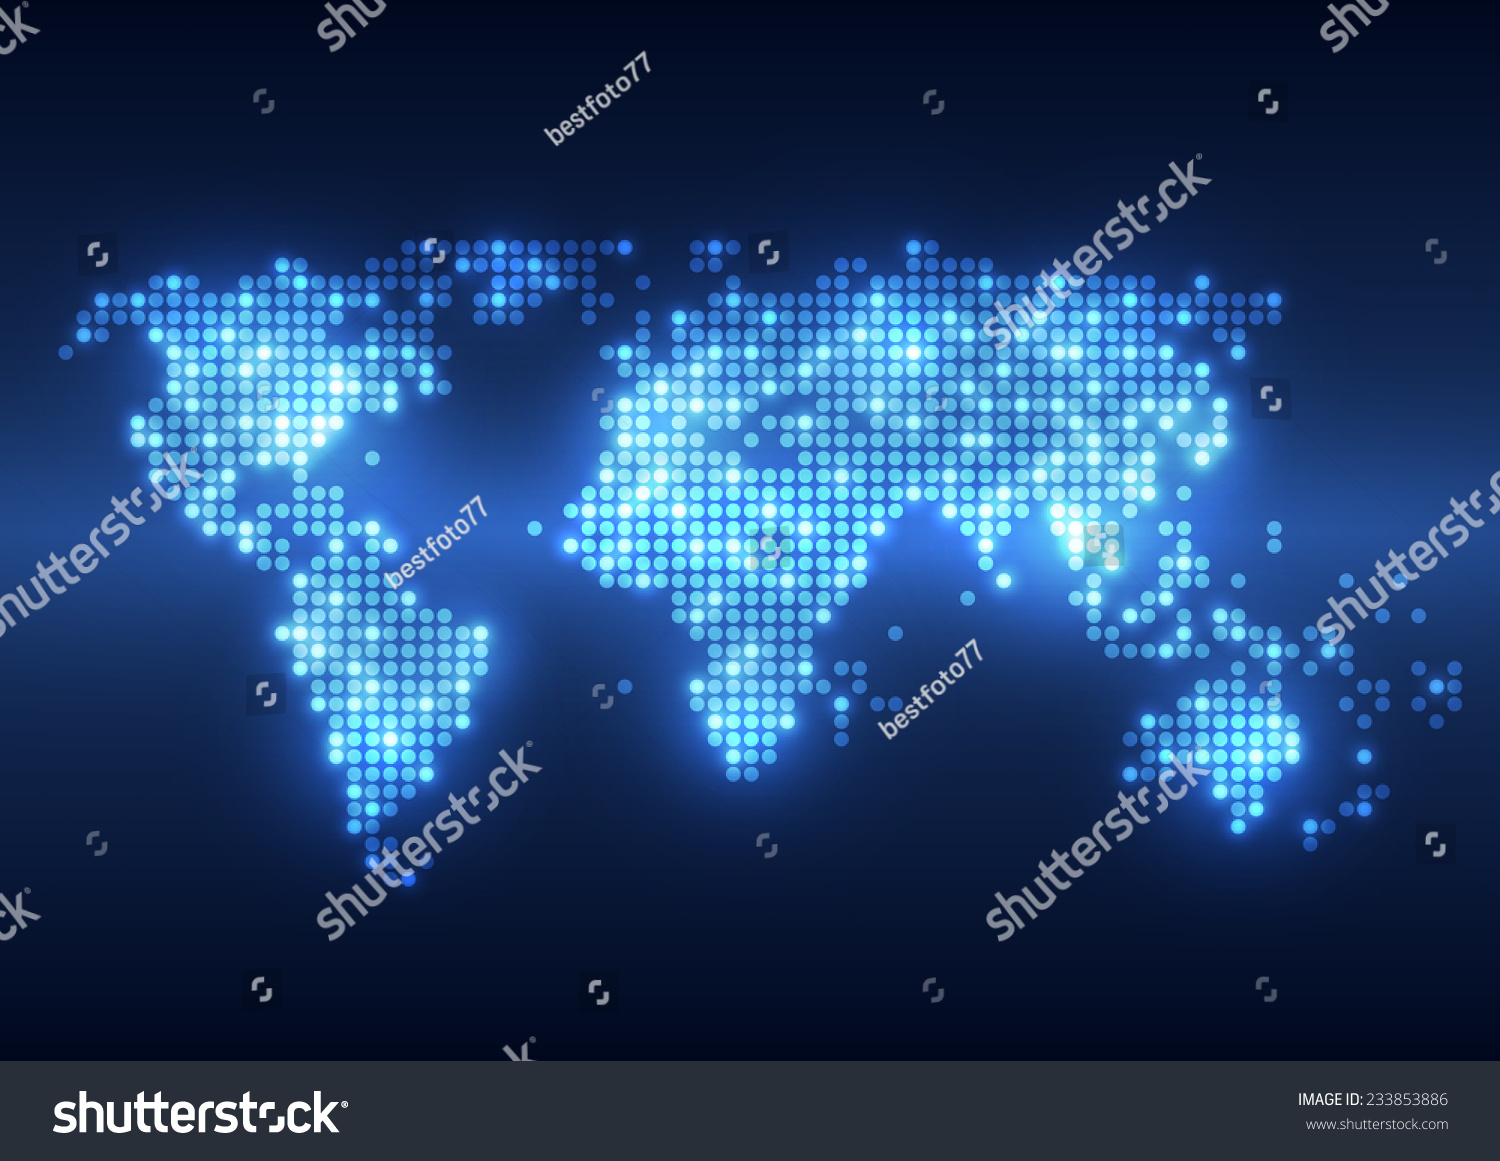 Abstract Technology Digital Backgrounds World Map Stock Vector